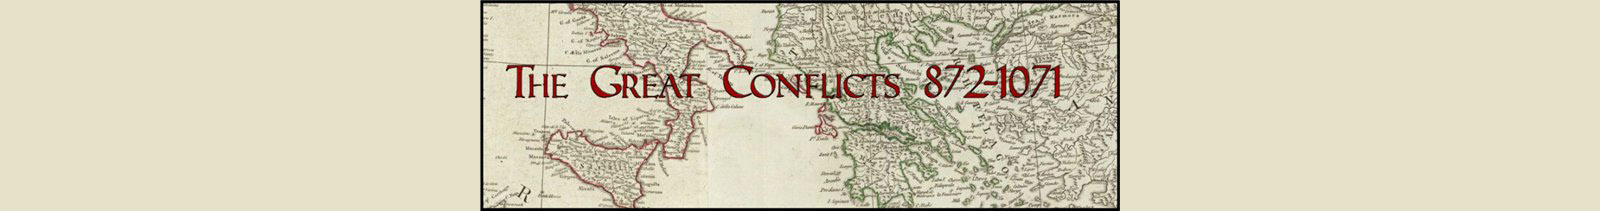 The Great Conflicts 872-1071